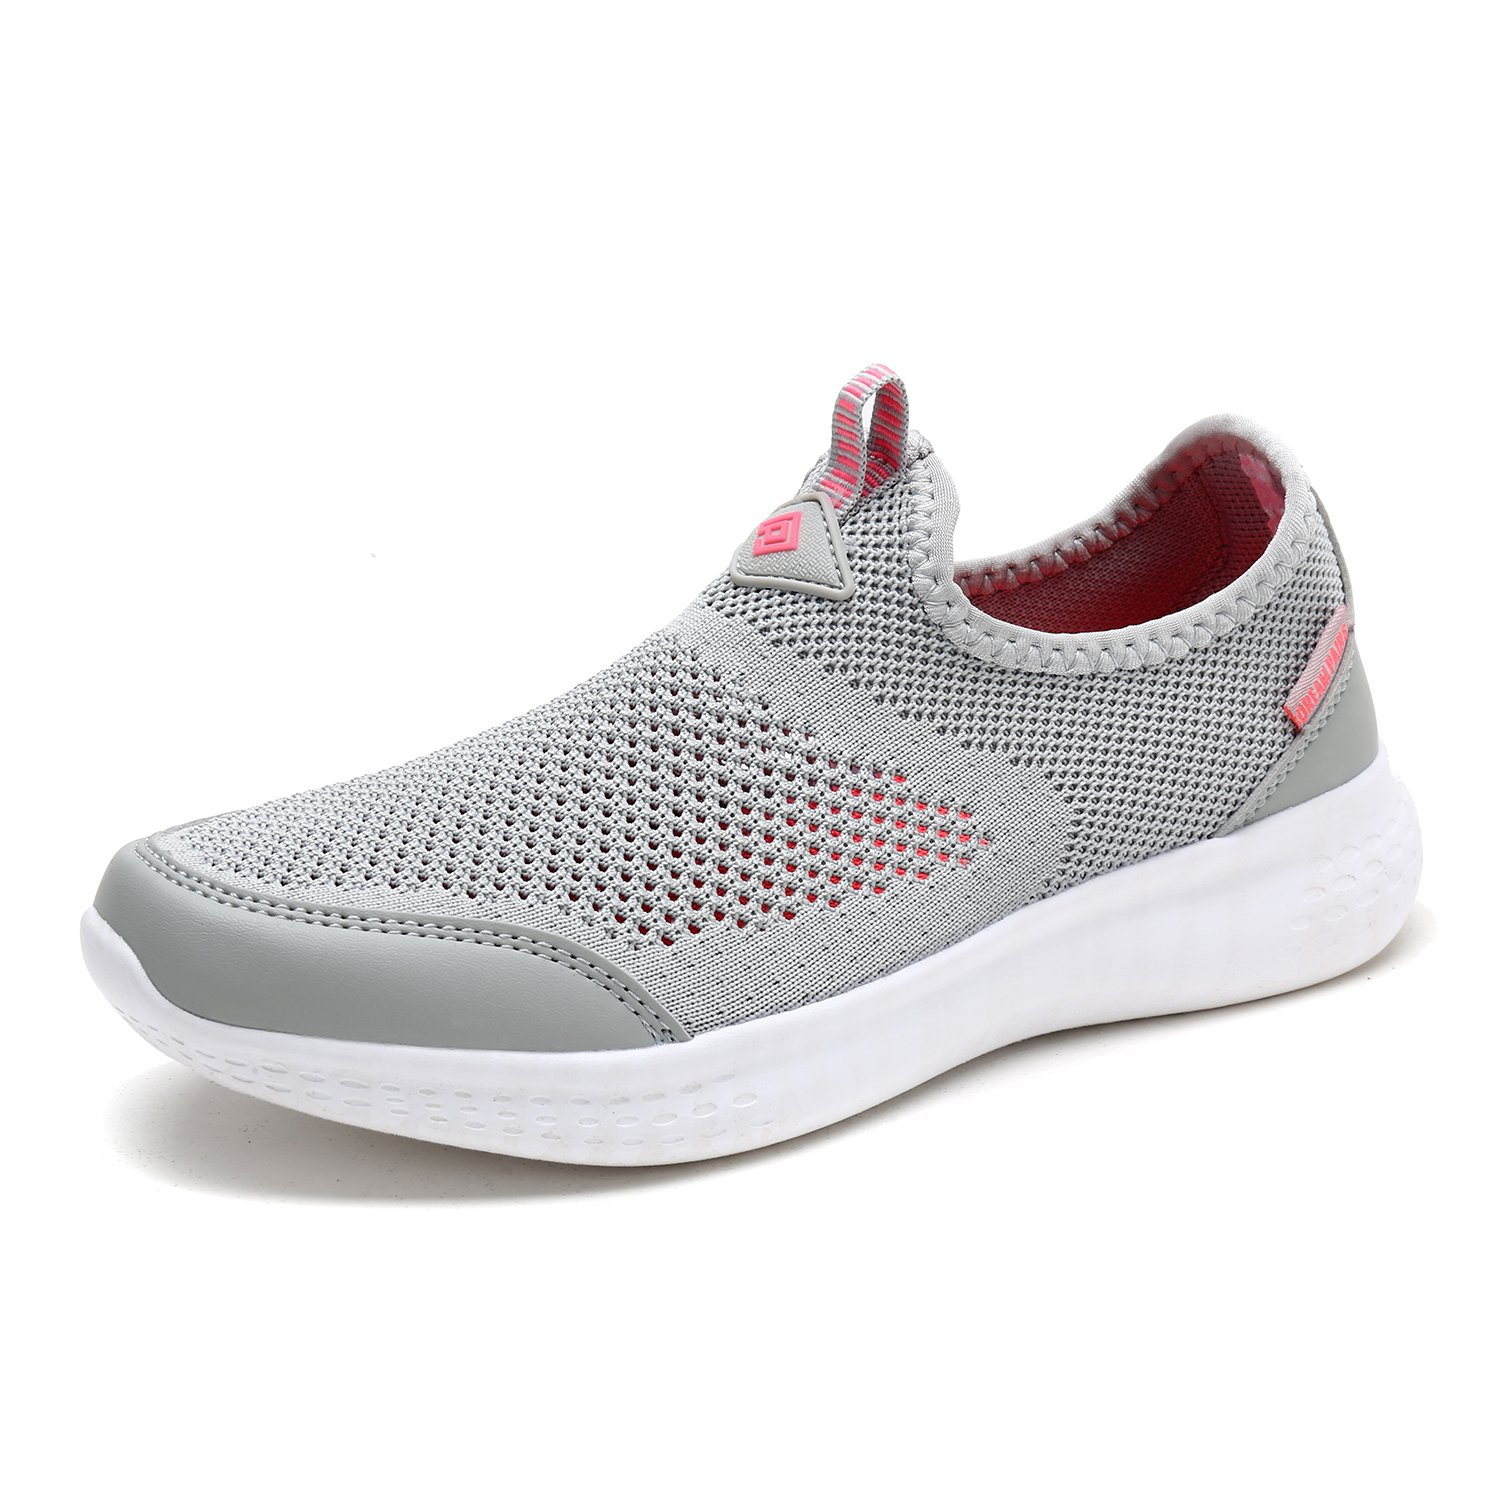 DREAM PAIRS Women's C0189_W Lt.Grey Coral Fashion Running Shoes Sneakers Size 6 M US